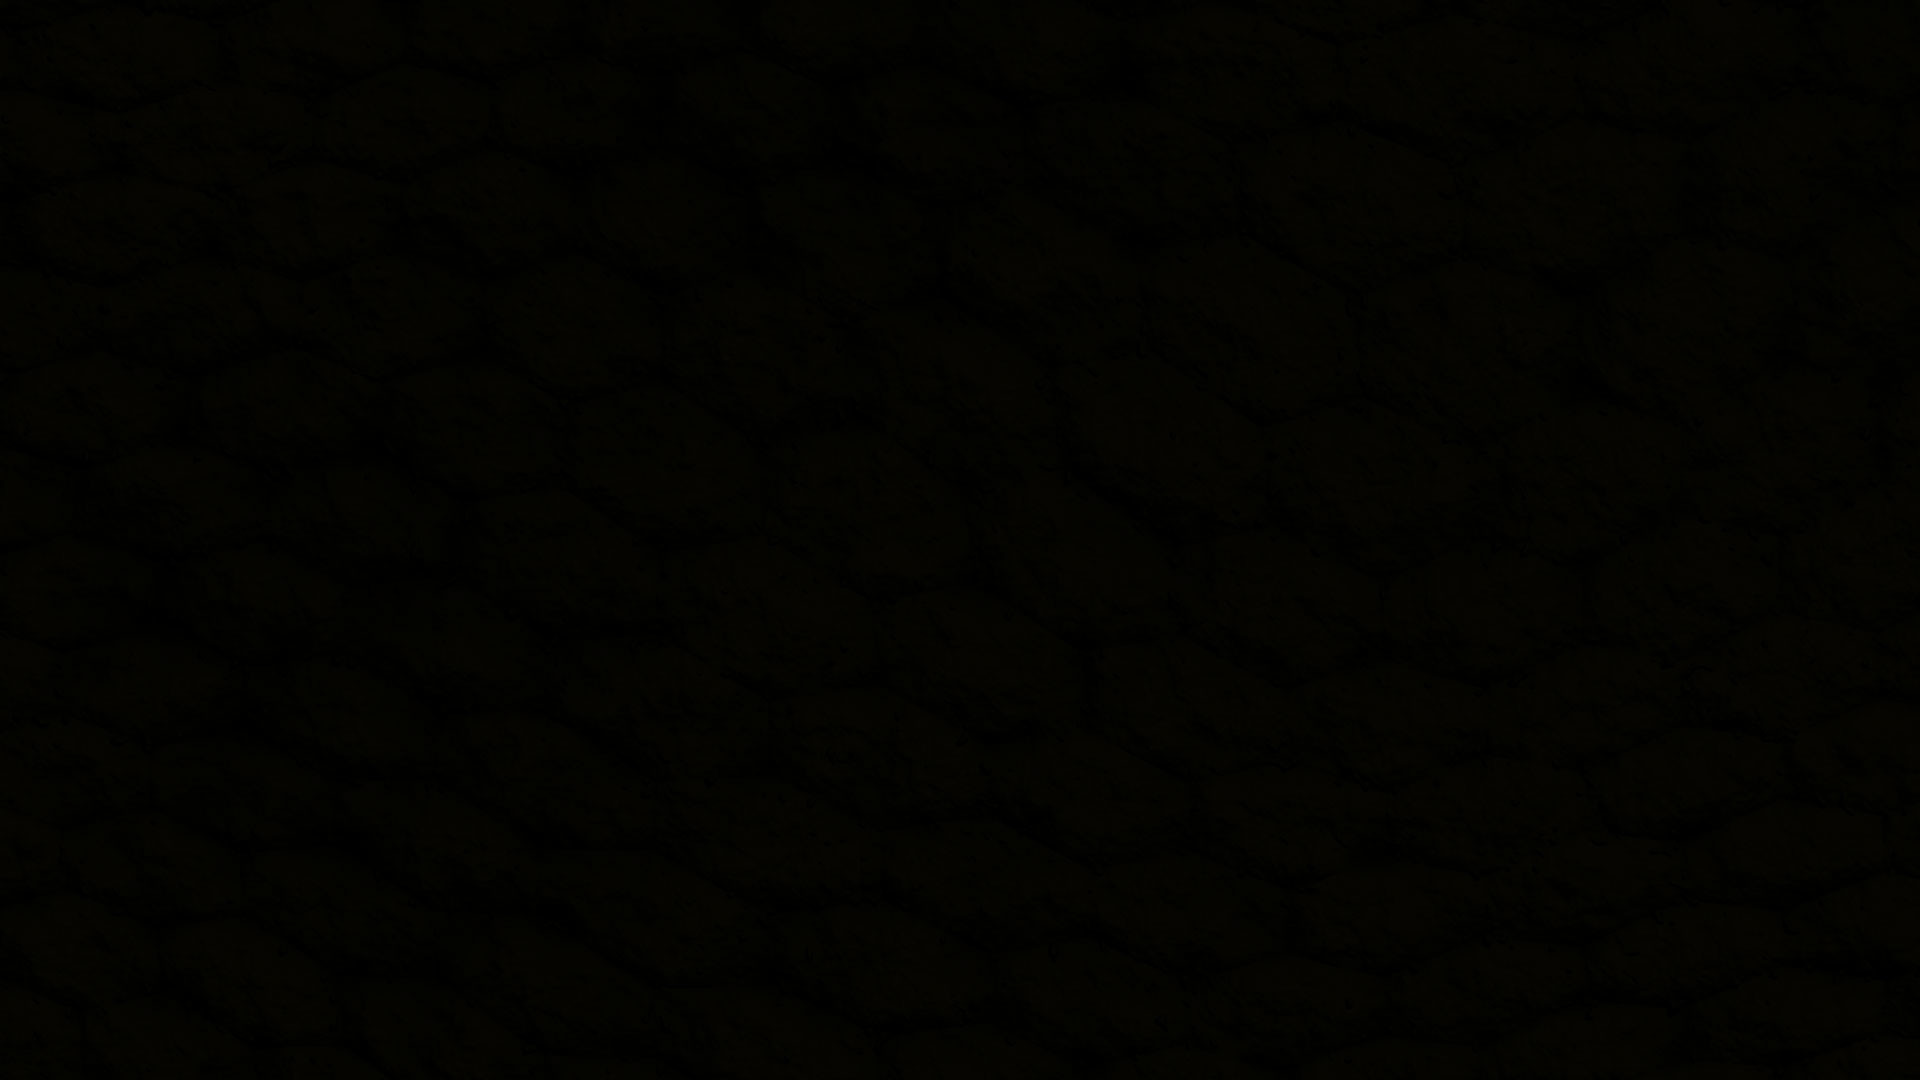 73+ Plain Black Wallpapers on WallpaperPlay